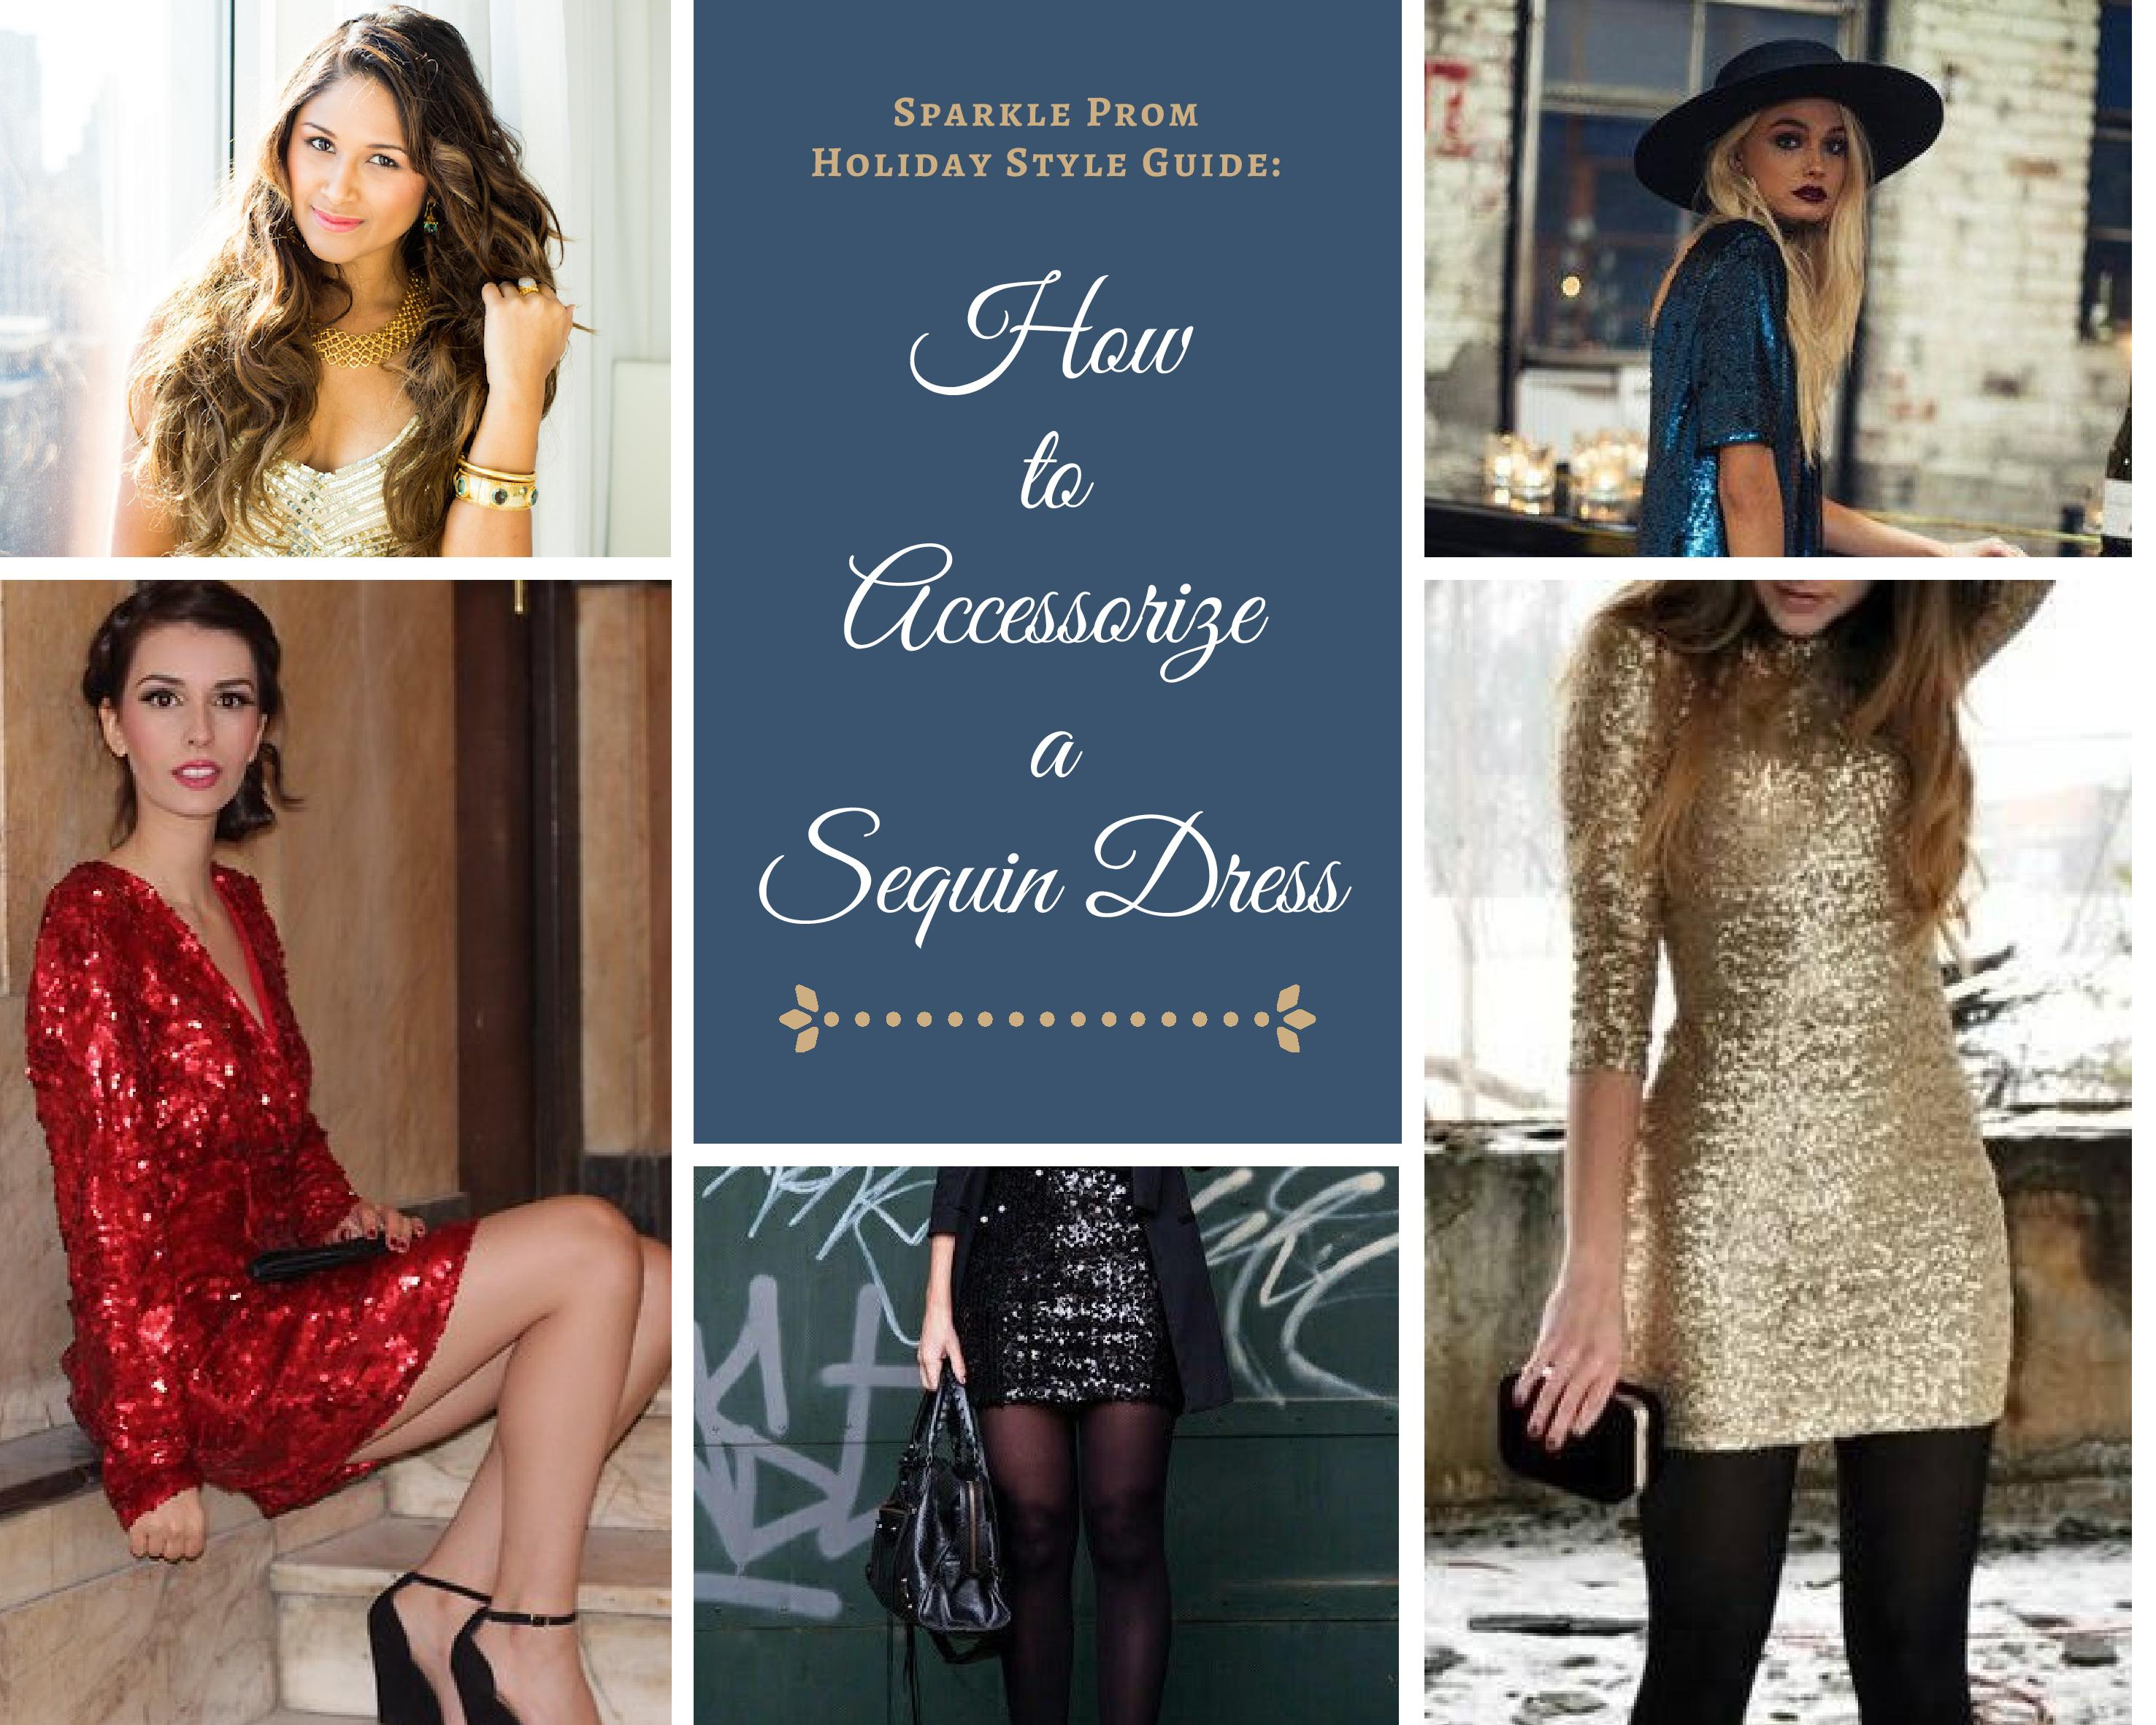 Holiday Style Guide: How to Accessorize a Sequin Dress – Sparkle Prom Fashion Blog